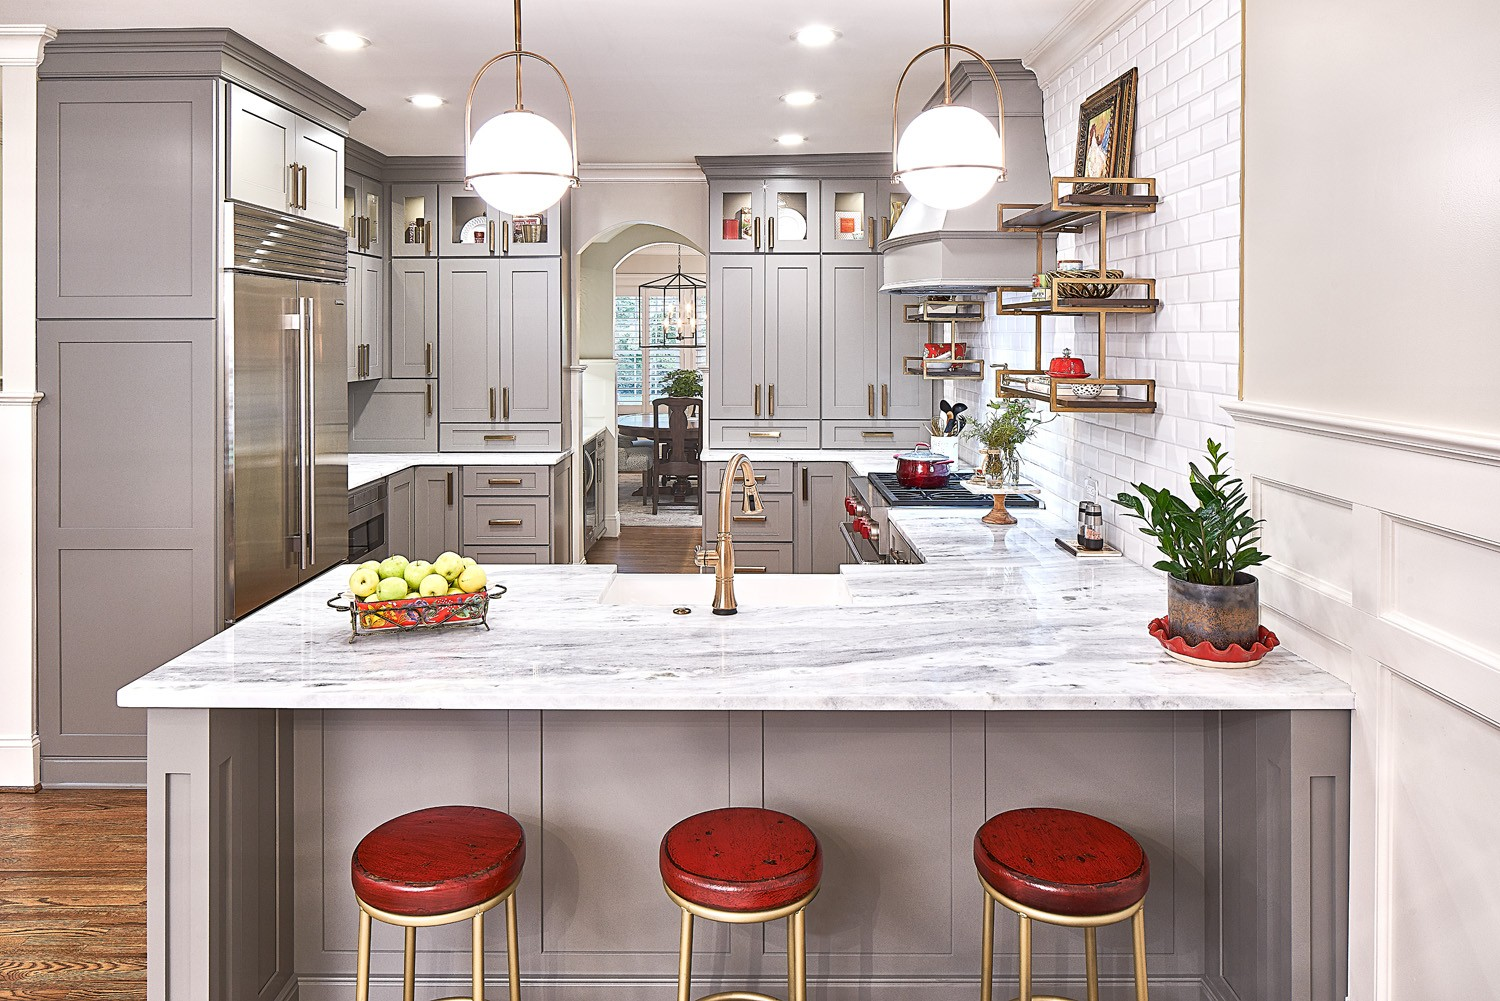 White and gray marble countertops contrast with the dovetail gray cabinetry. Red stools and accessories offer a pop of color.